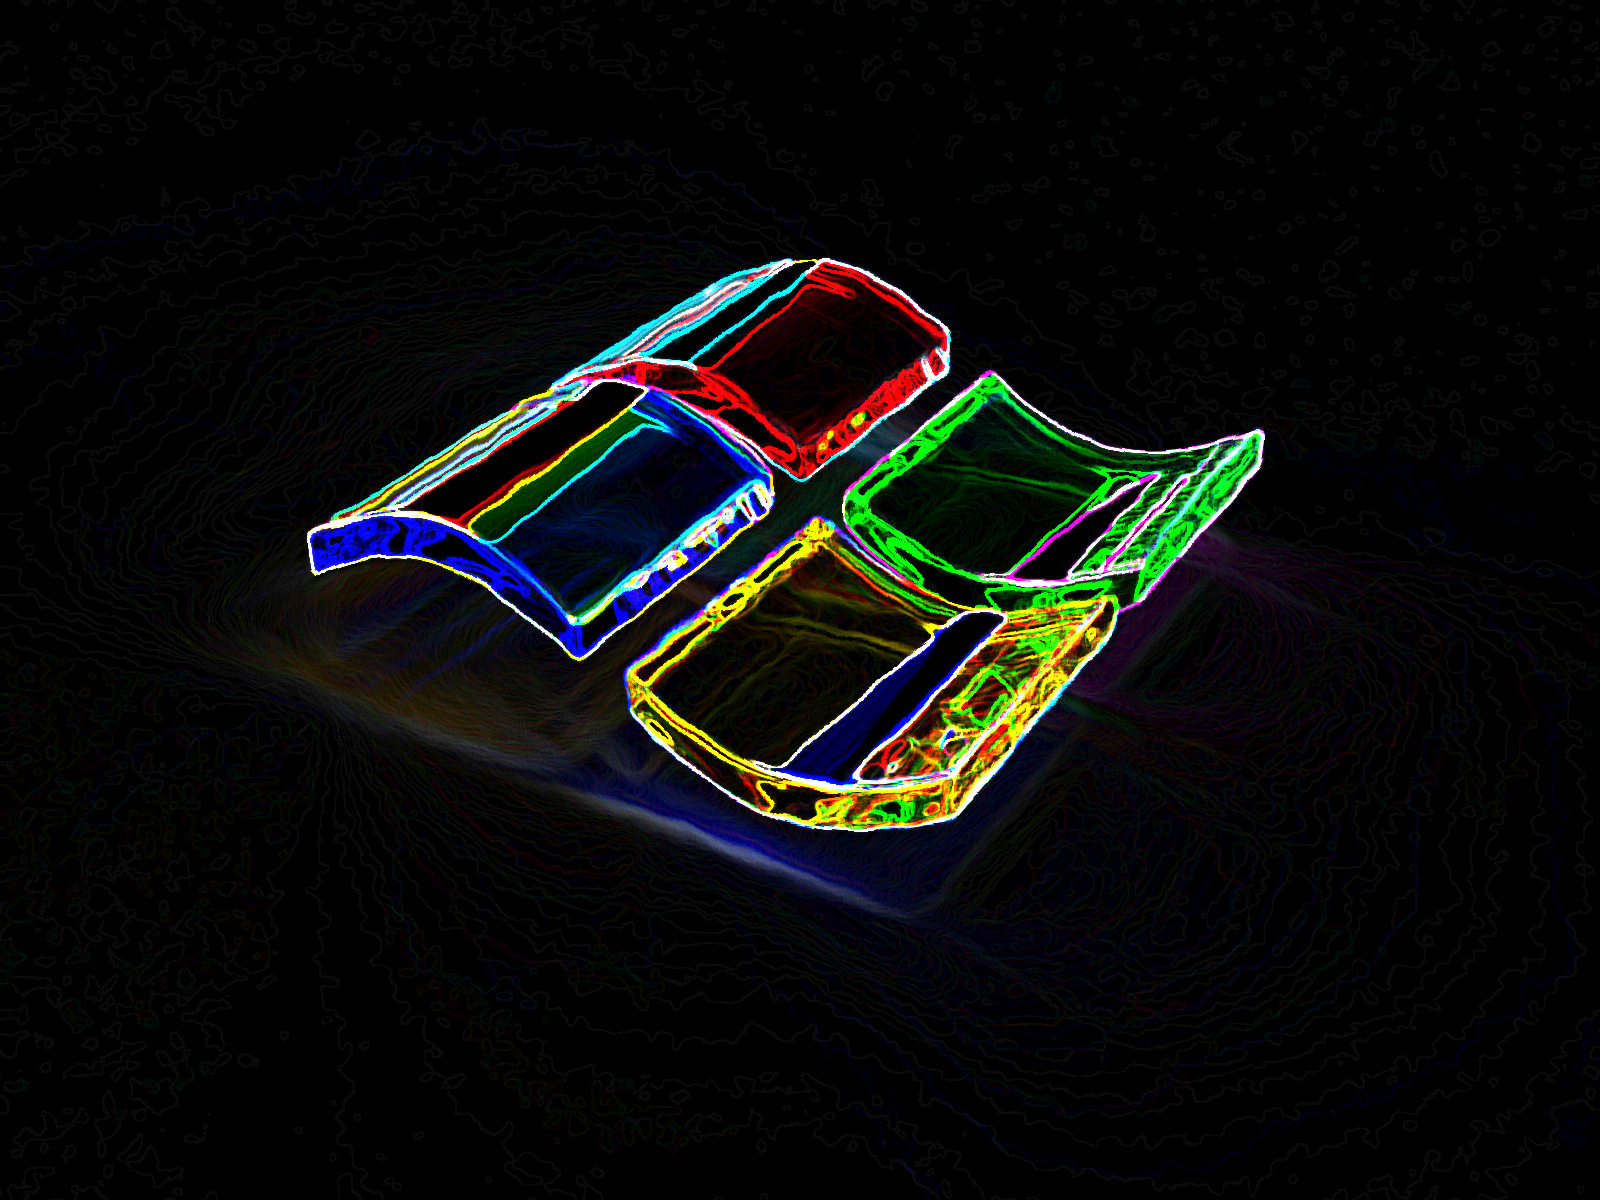 Neon Love Wallpapers and Neon Love Backgrounds 1 of 1 1600x1200